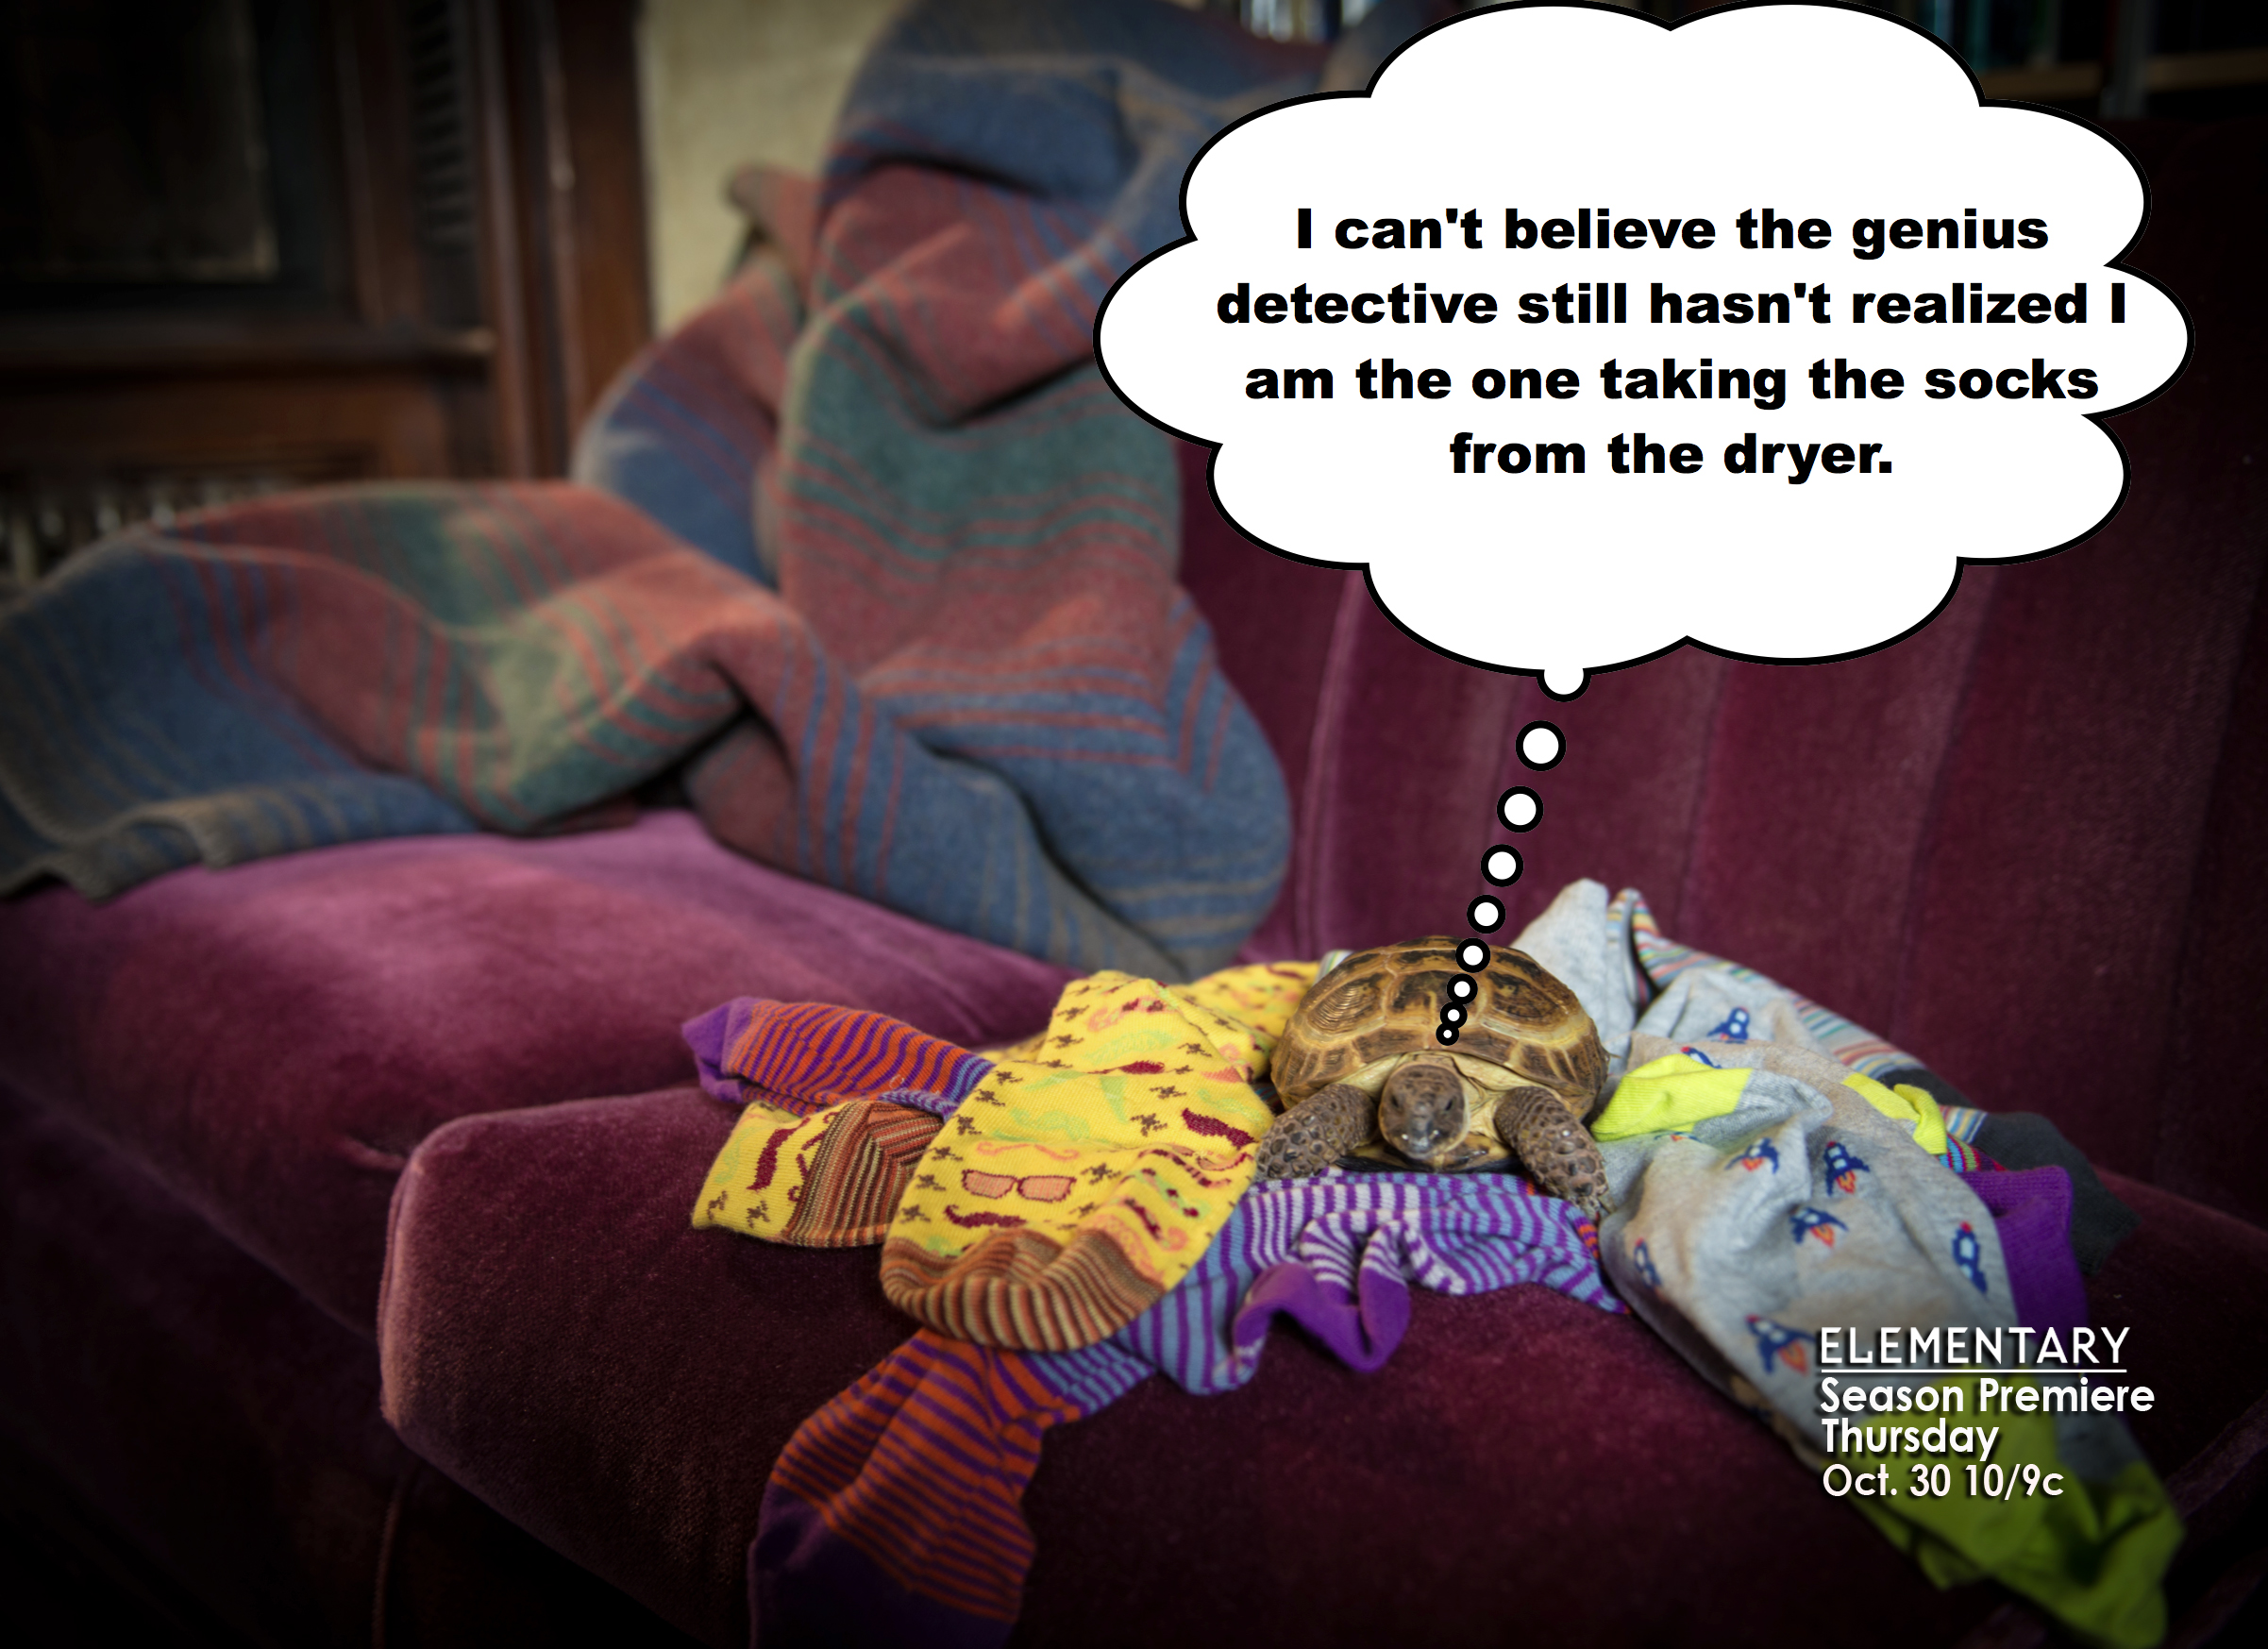 You don't mess with a detectives socks.